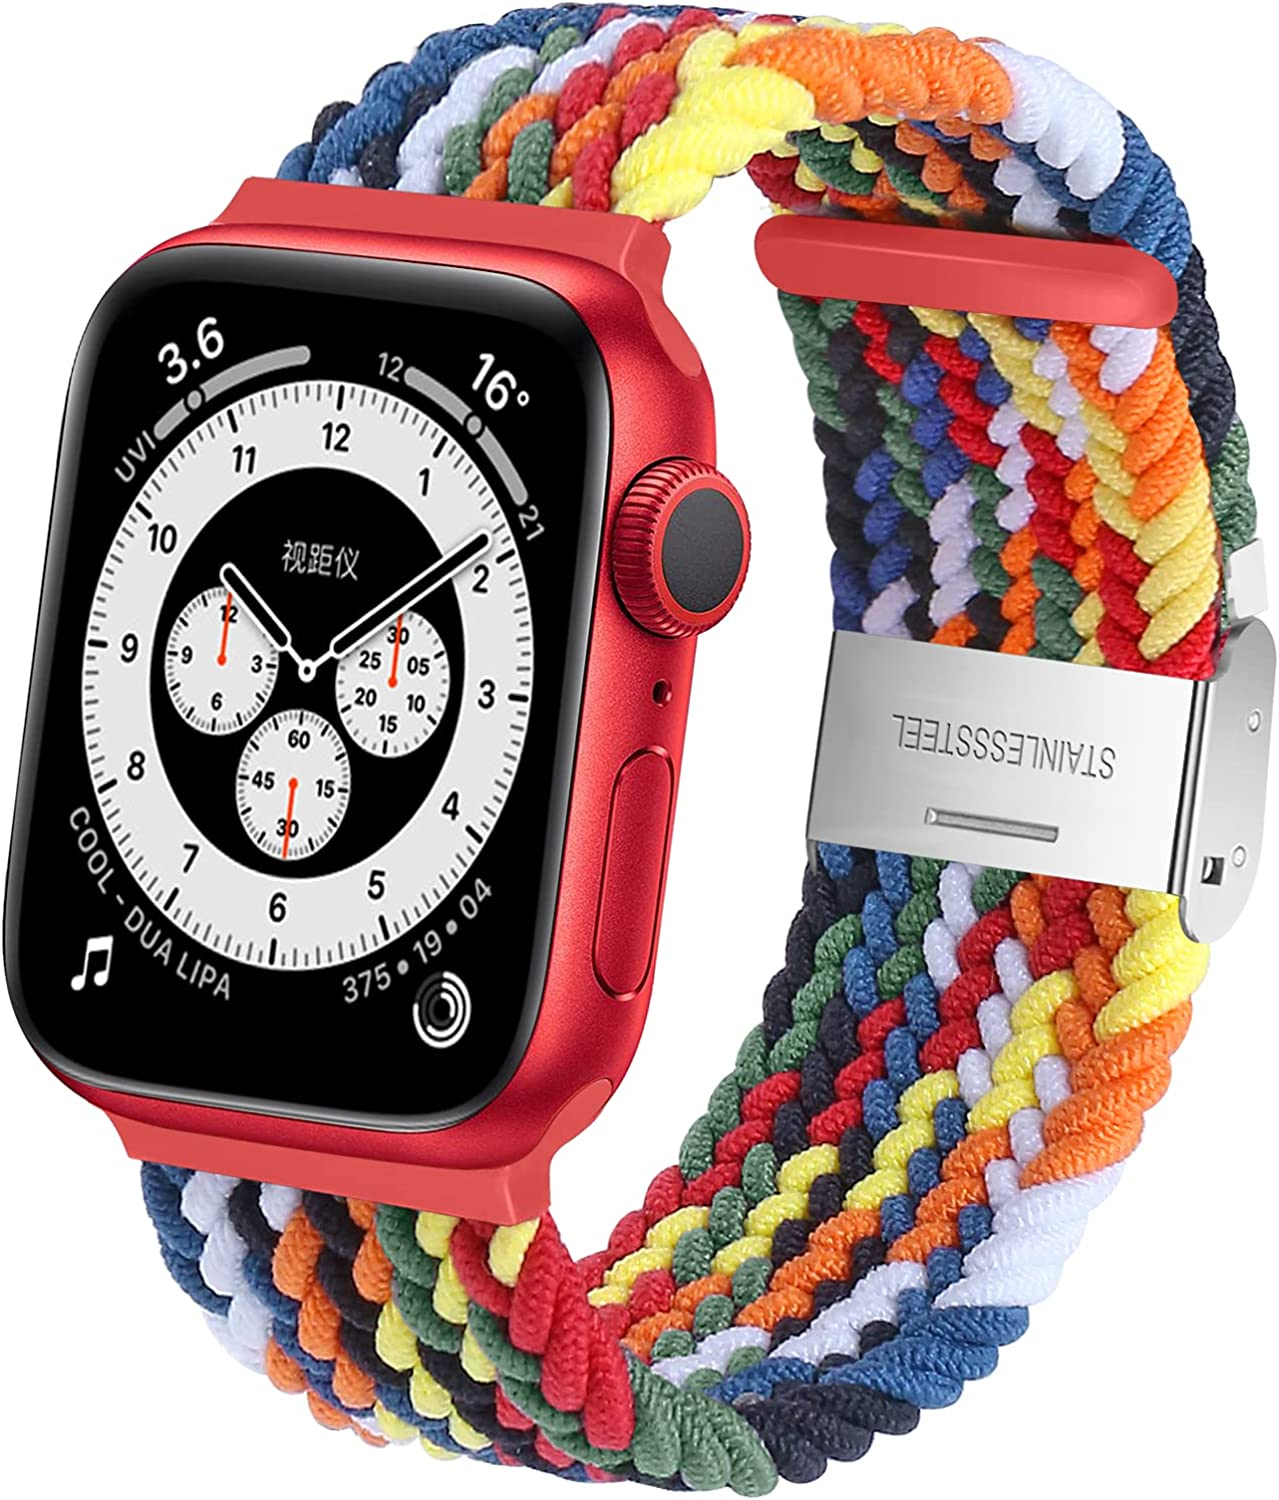 Neoxik Braided Sport Compatible with Apple Watch Bands 44mm 42mm 40mm 38mm,Breathable Adjustable Nylon Loop with Buckle Elastic Bands for Apple watch SE Series 6 5 4 3 2 1